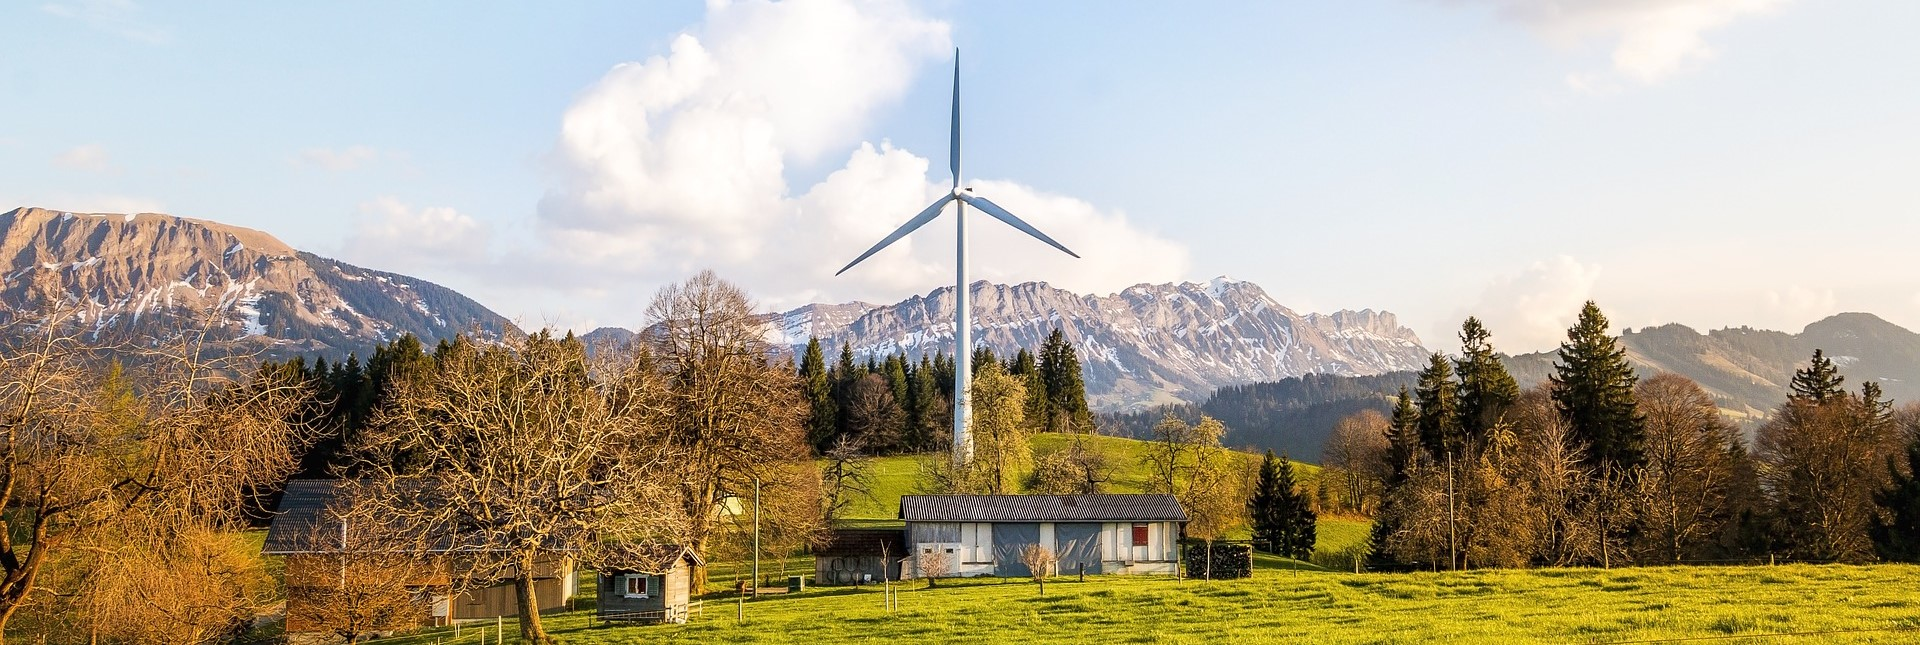 Wind Turbine in the Mountains